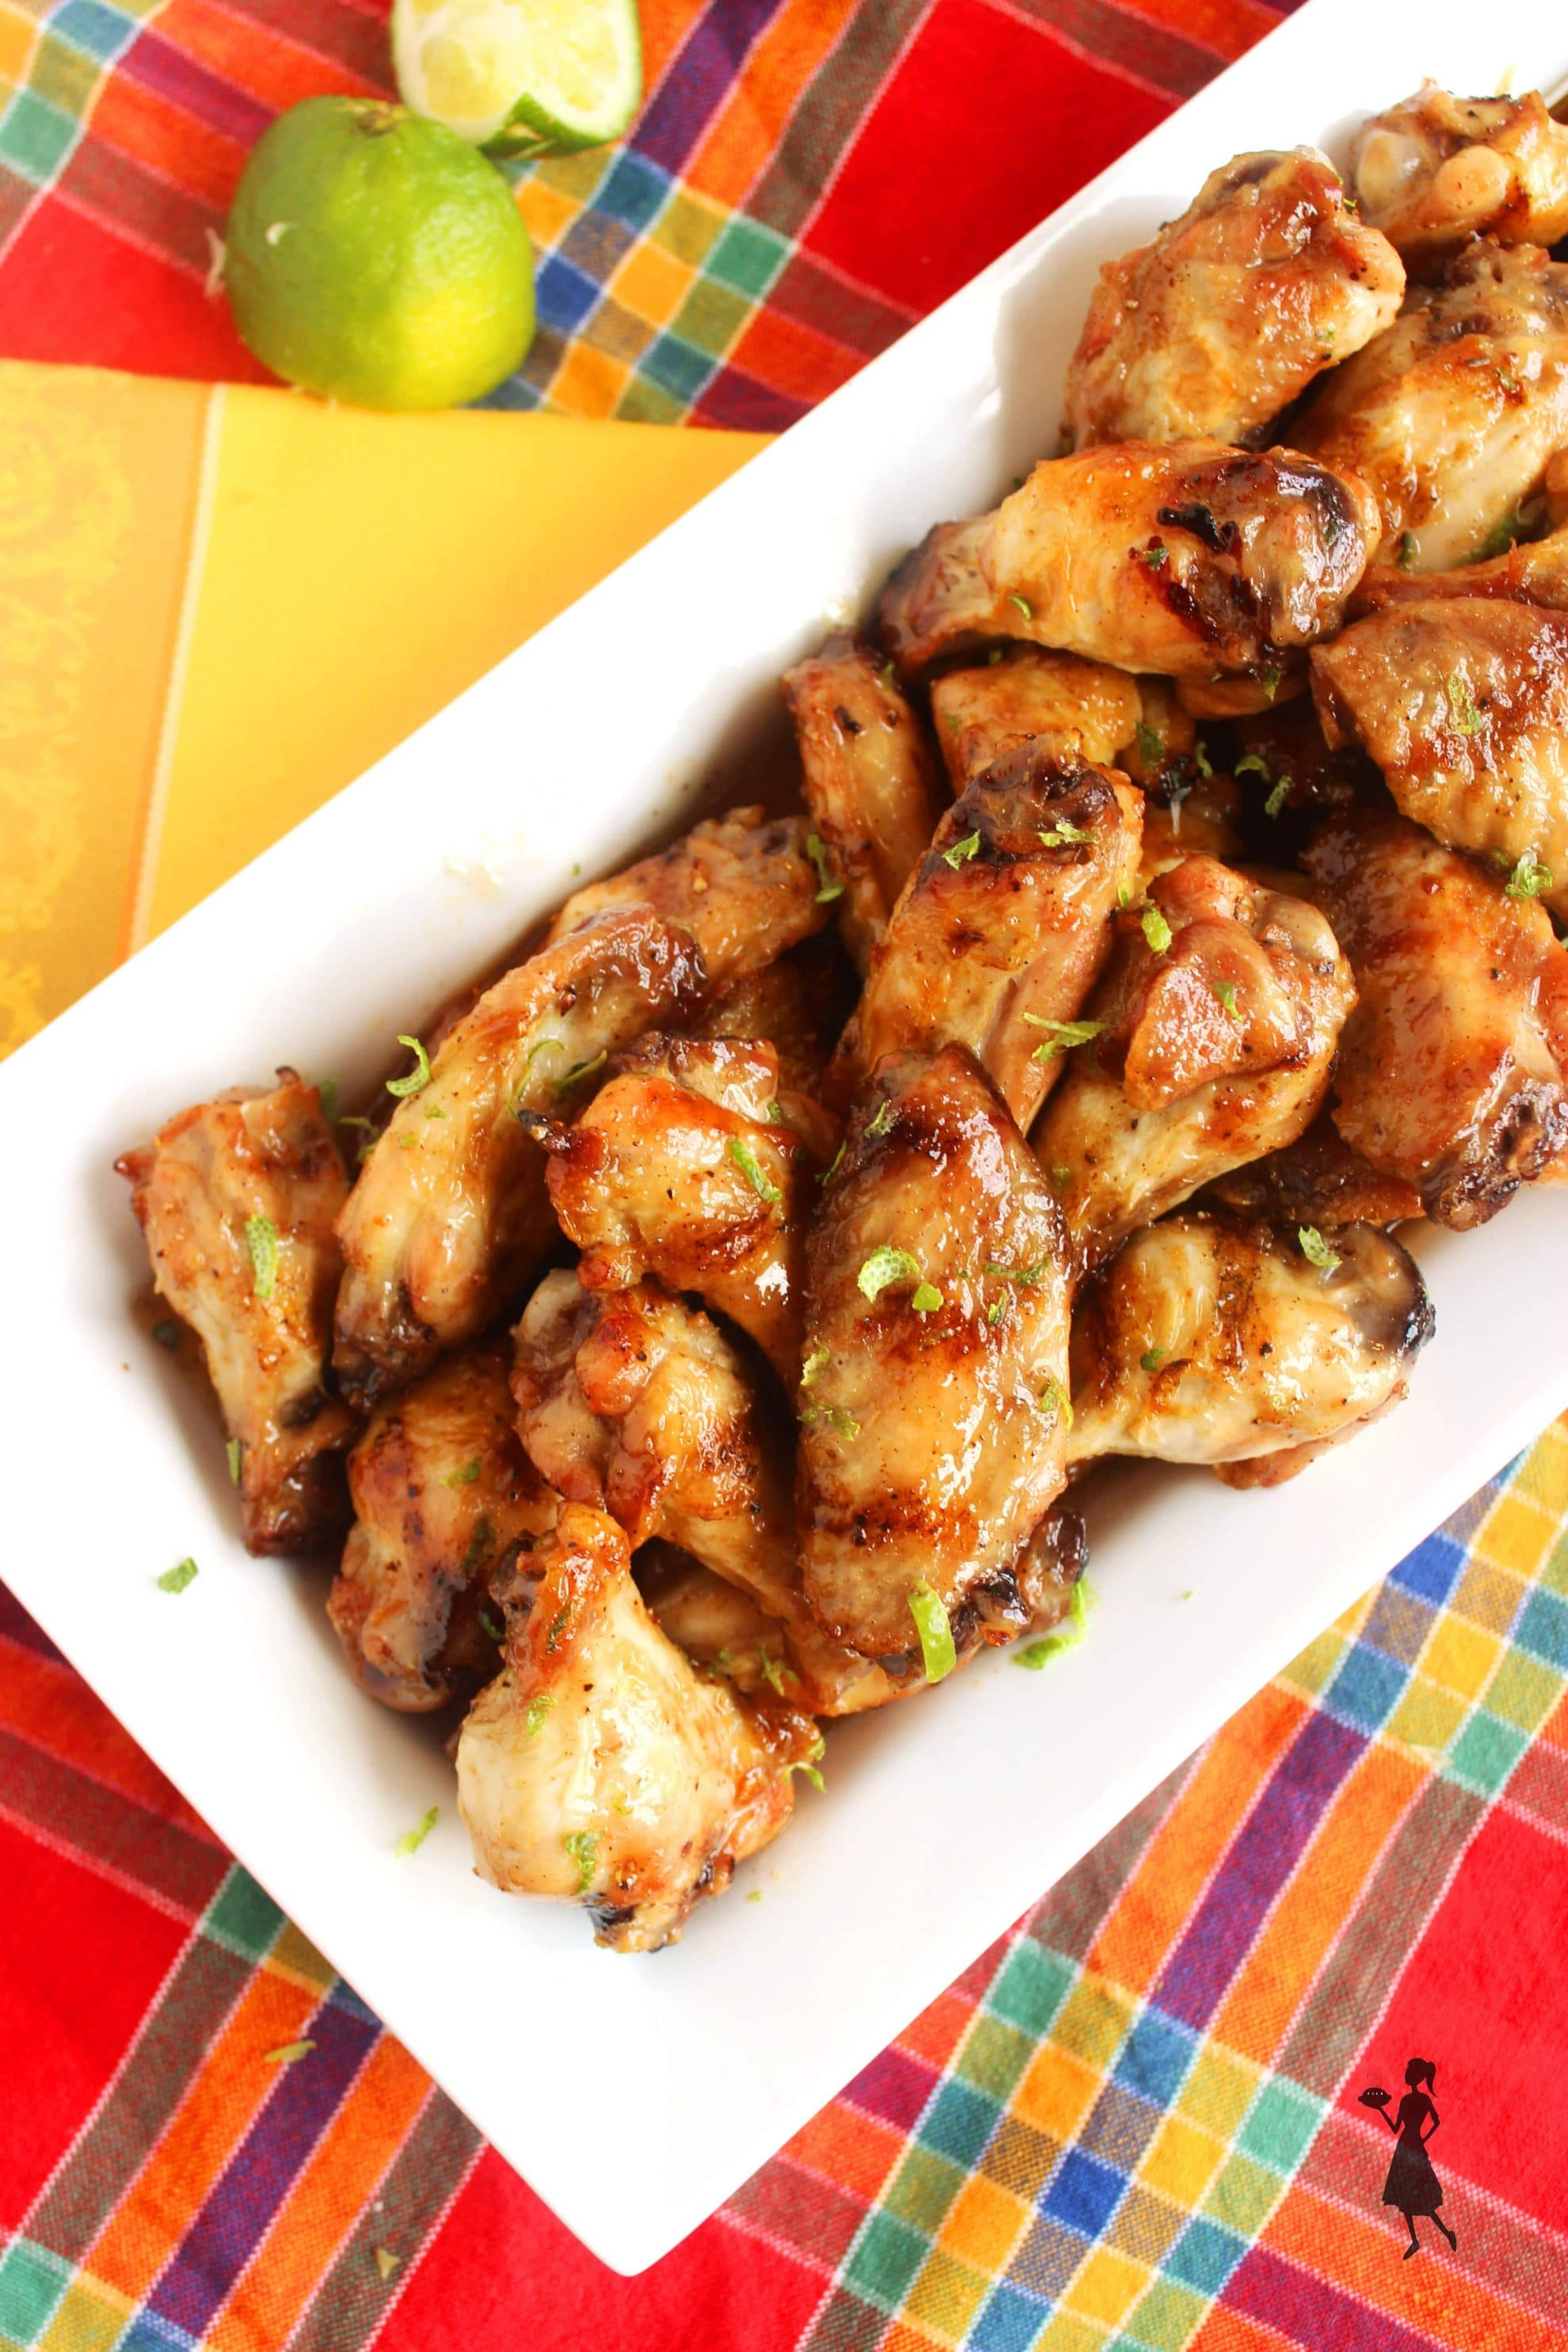 Crispy, grilled chicken wings smothered in a sticky, slightly spicy ...